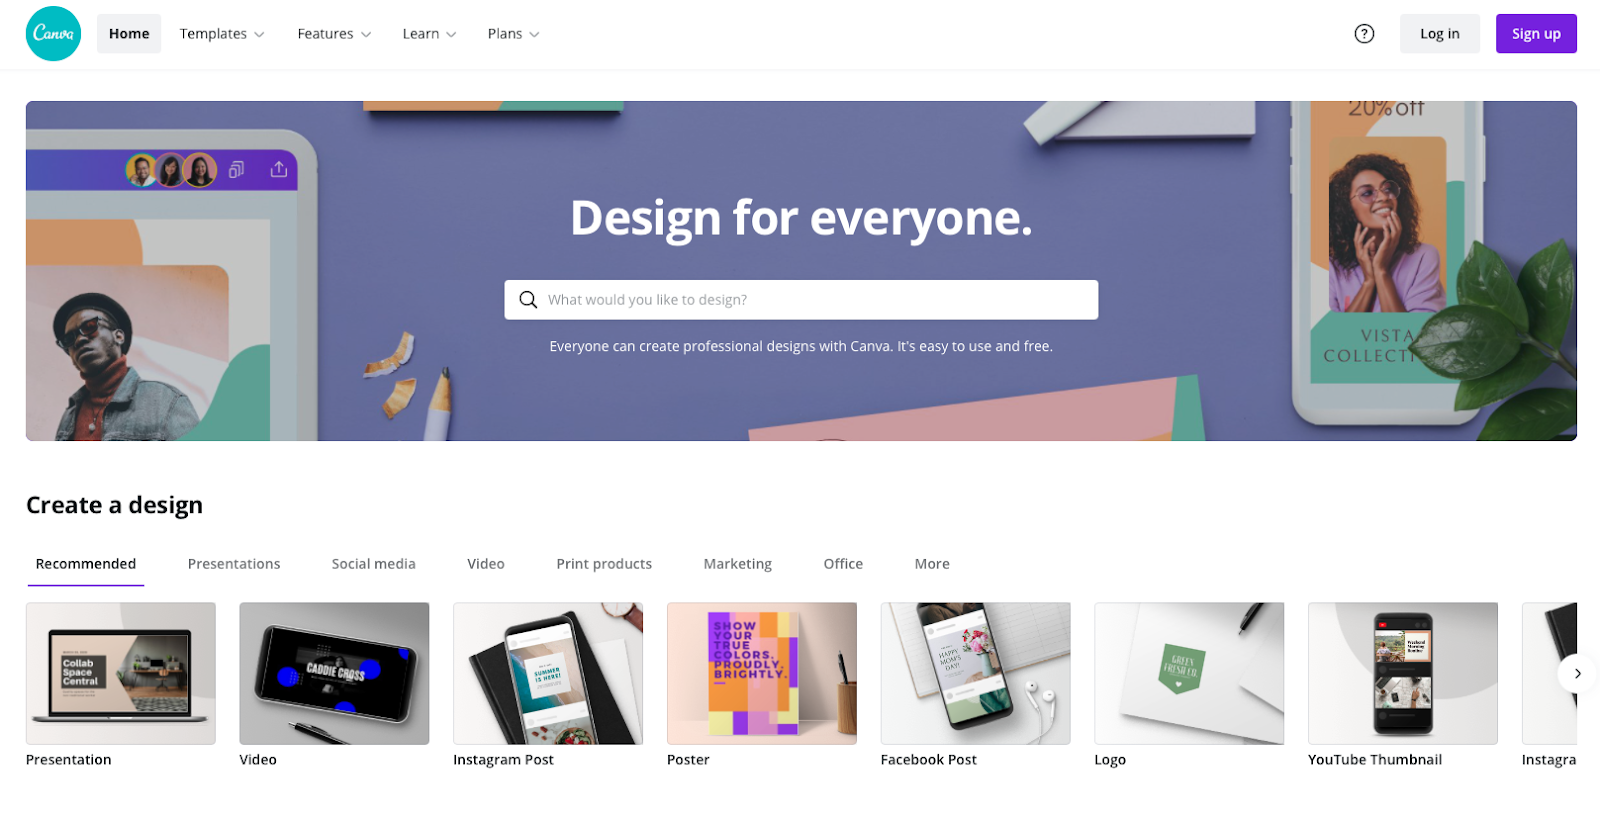 Screenshot of Canva's home page